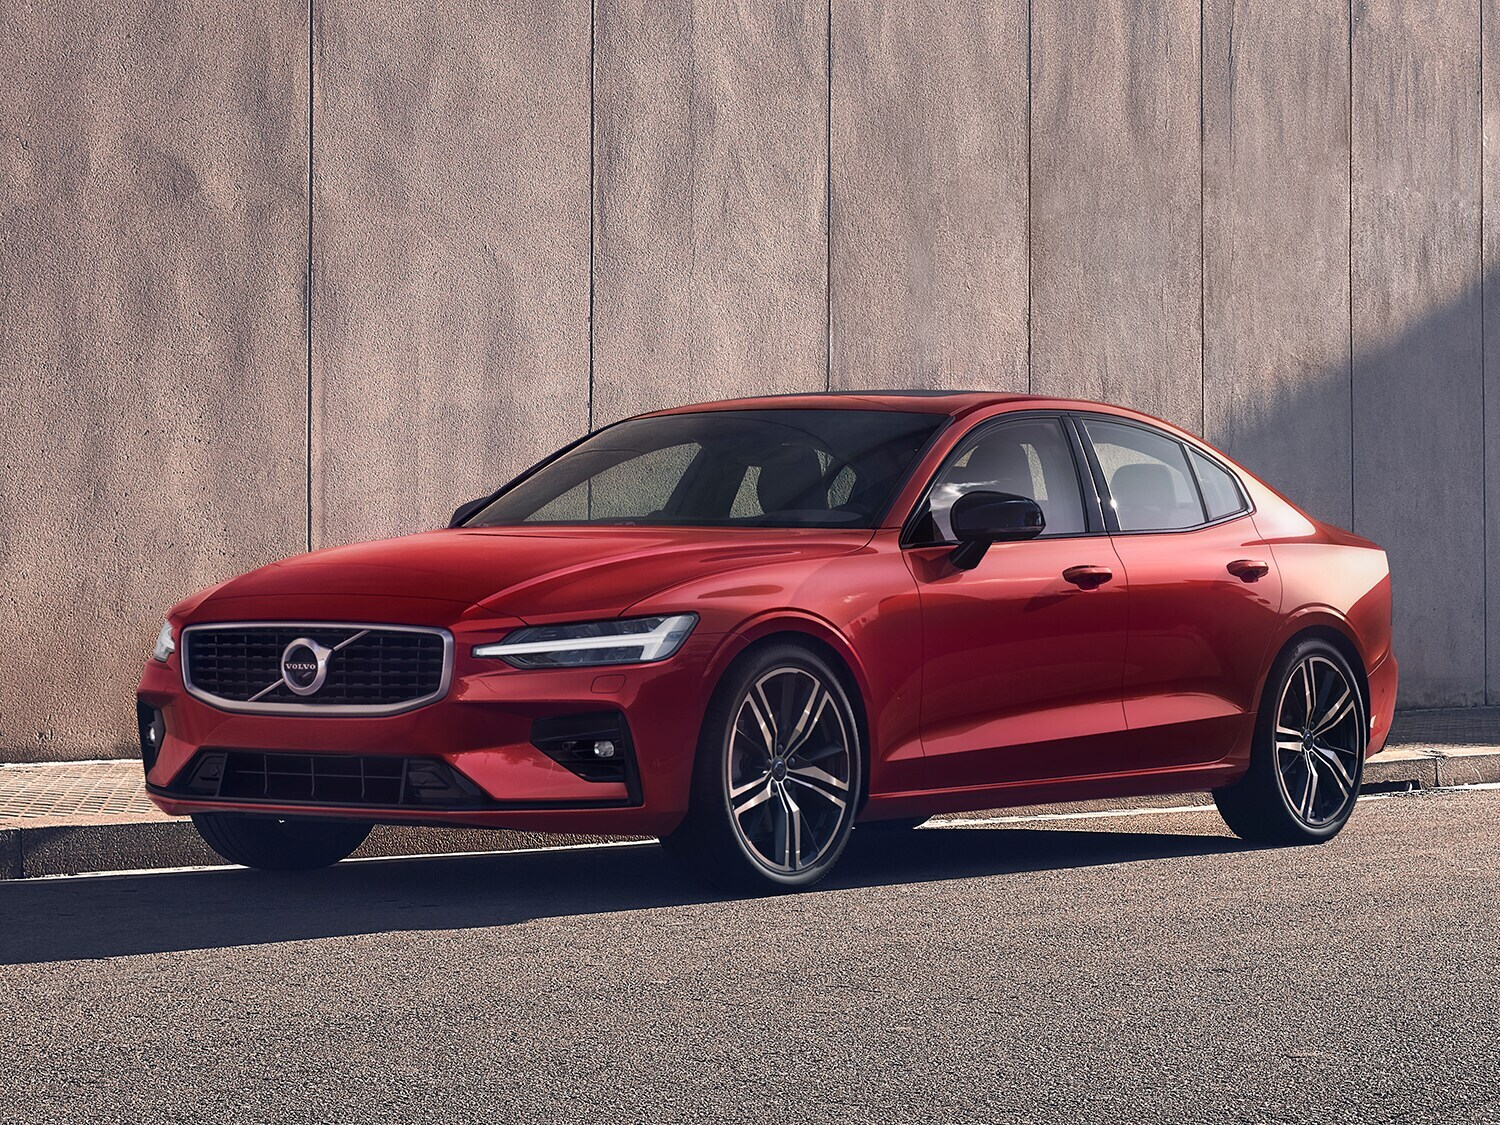 The new S60 and V60